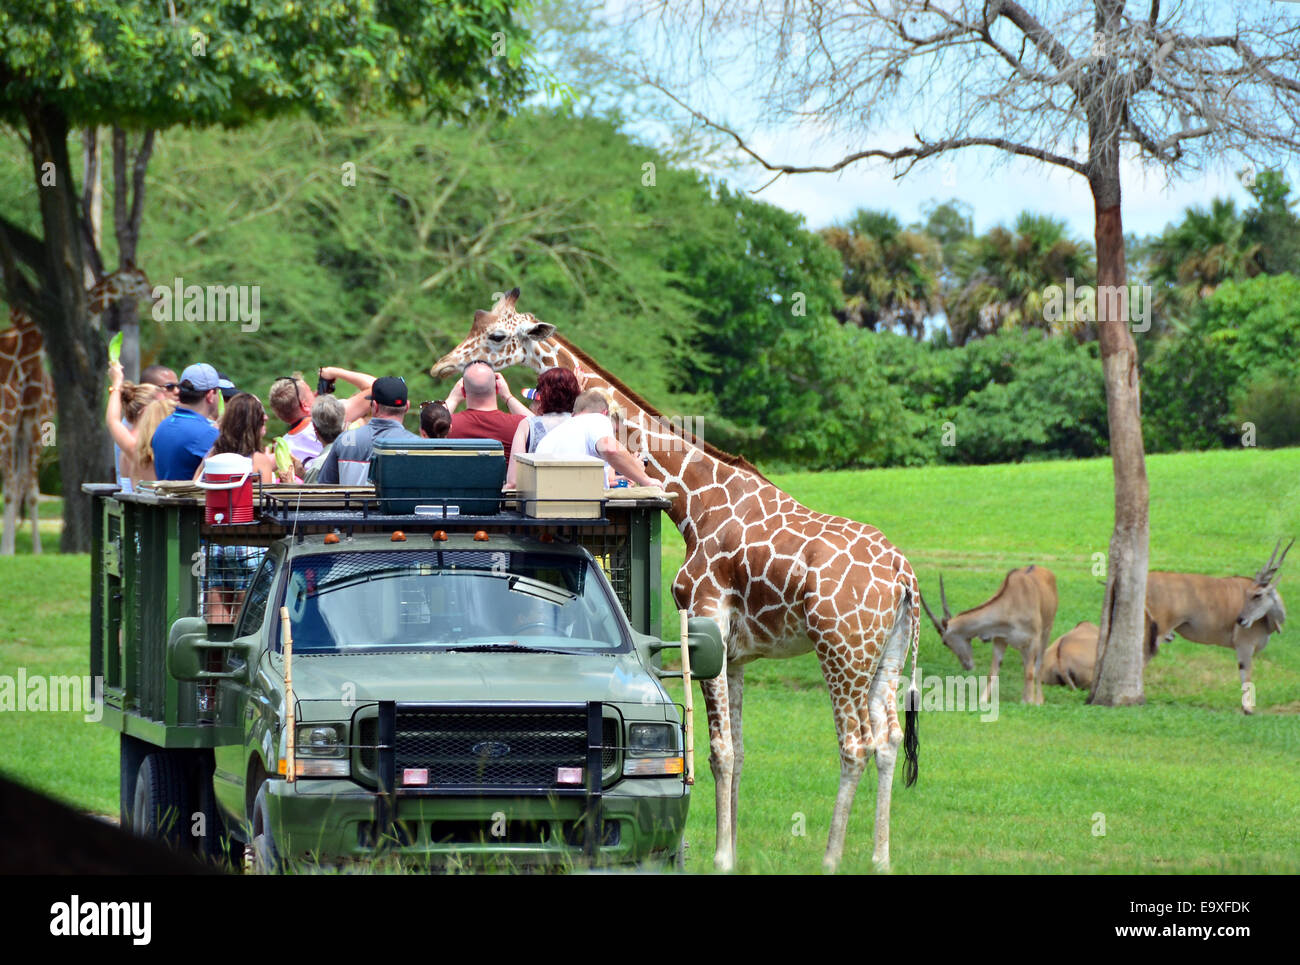 Visitors Feeding Giraffes From An Open Truck At Busch Gardens Tampa Stock Photo Royalty Free